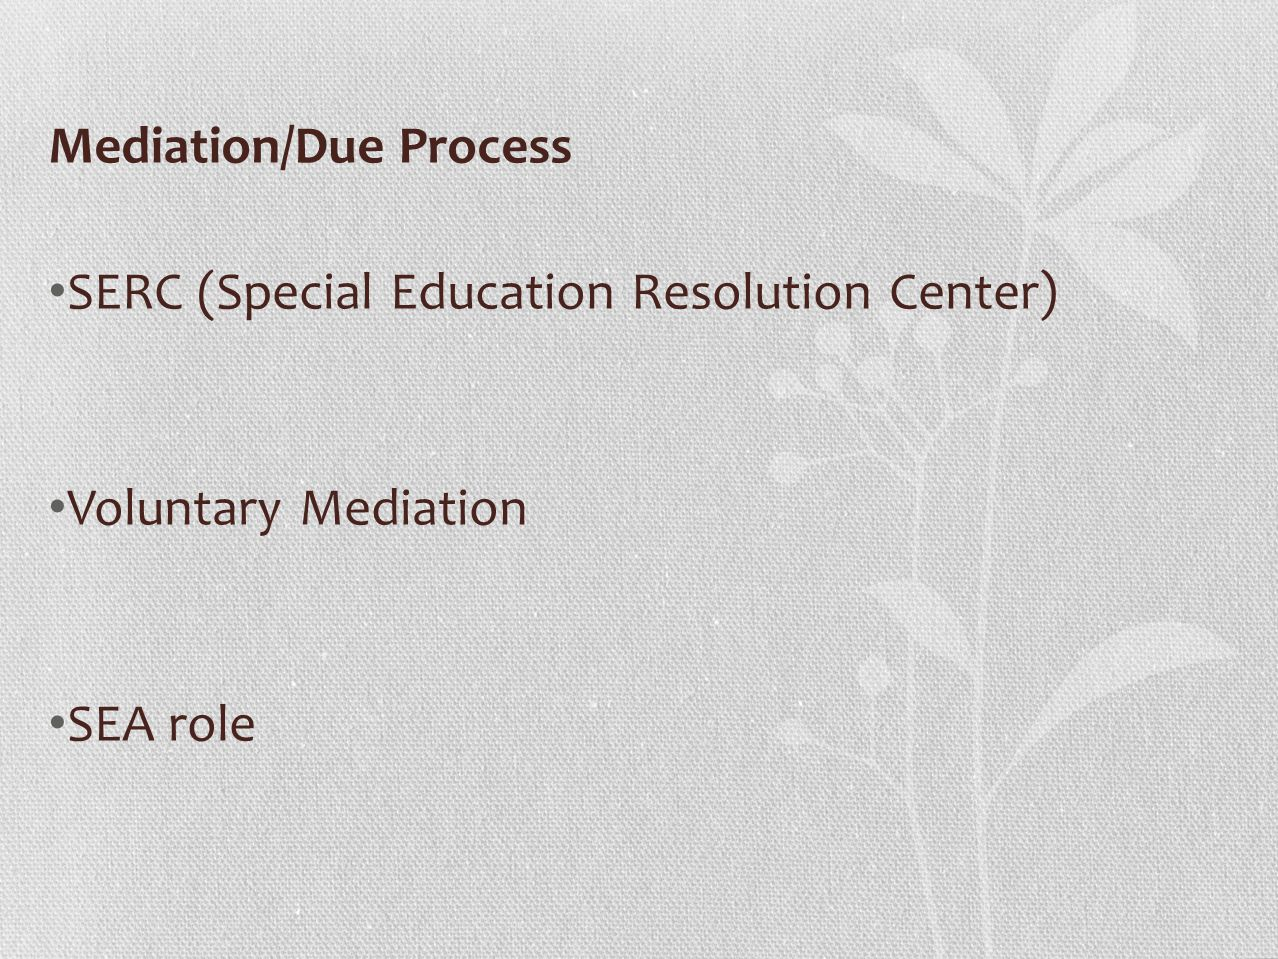 Mediation/Due Process SERC (Special Education Resolution Center) Voluntary Mediation SEA role